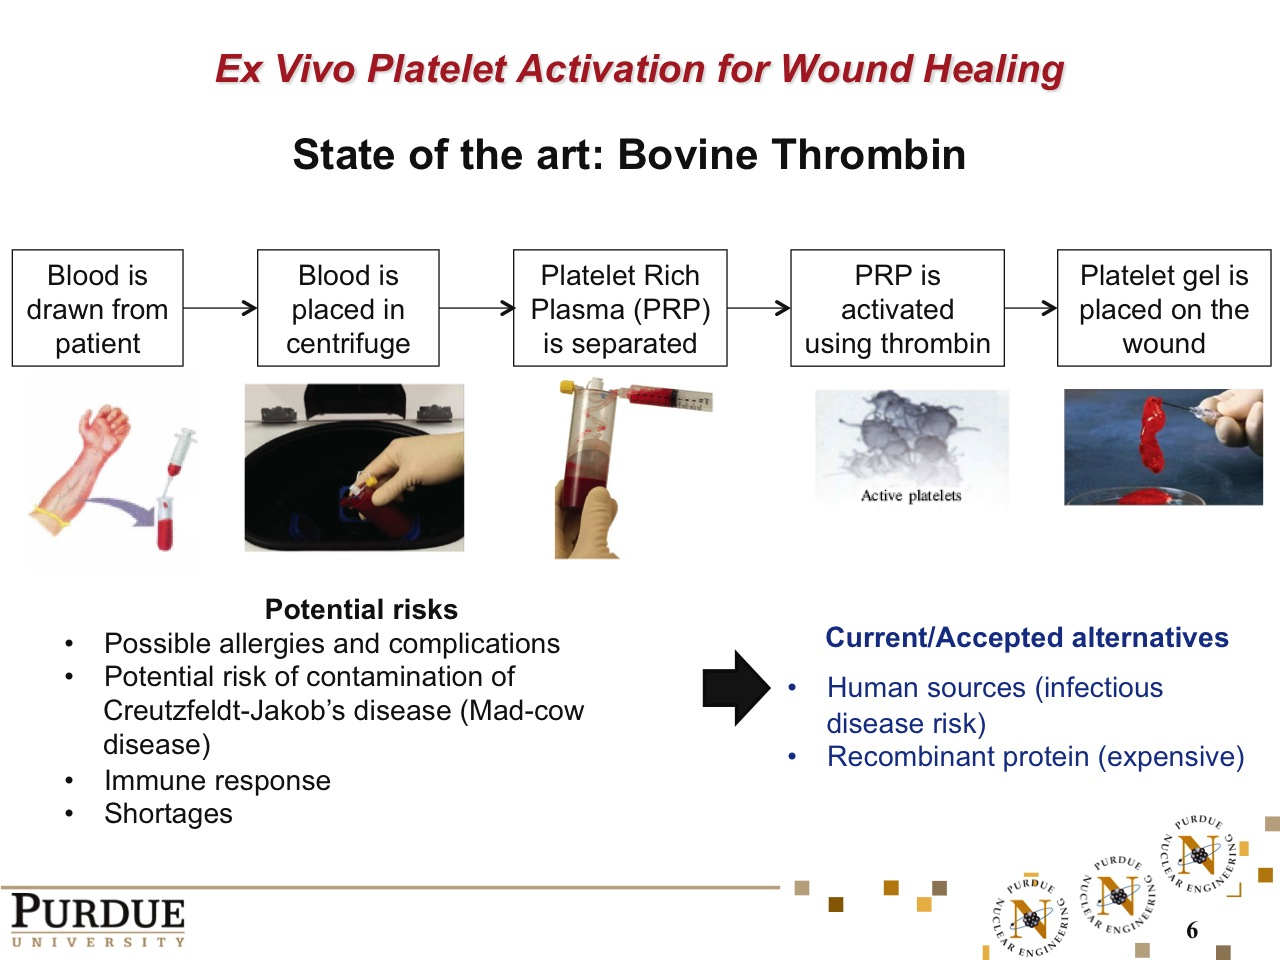 Ex Vivo Platelet Activation for Wound Healing